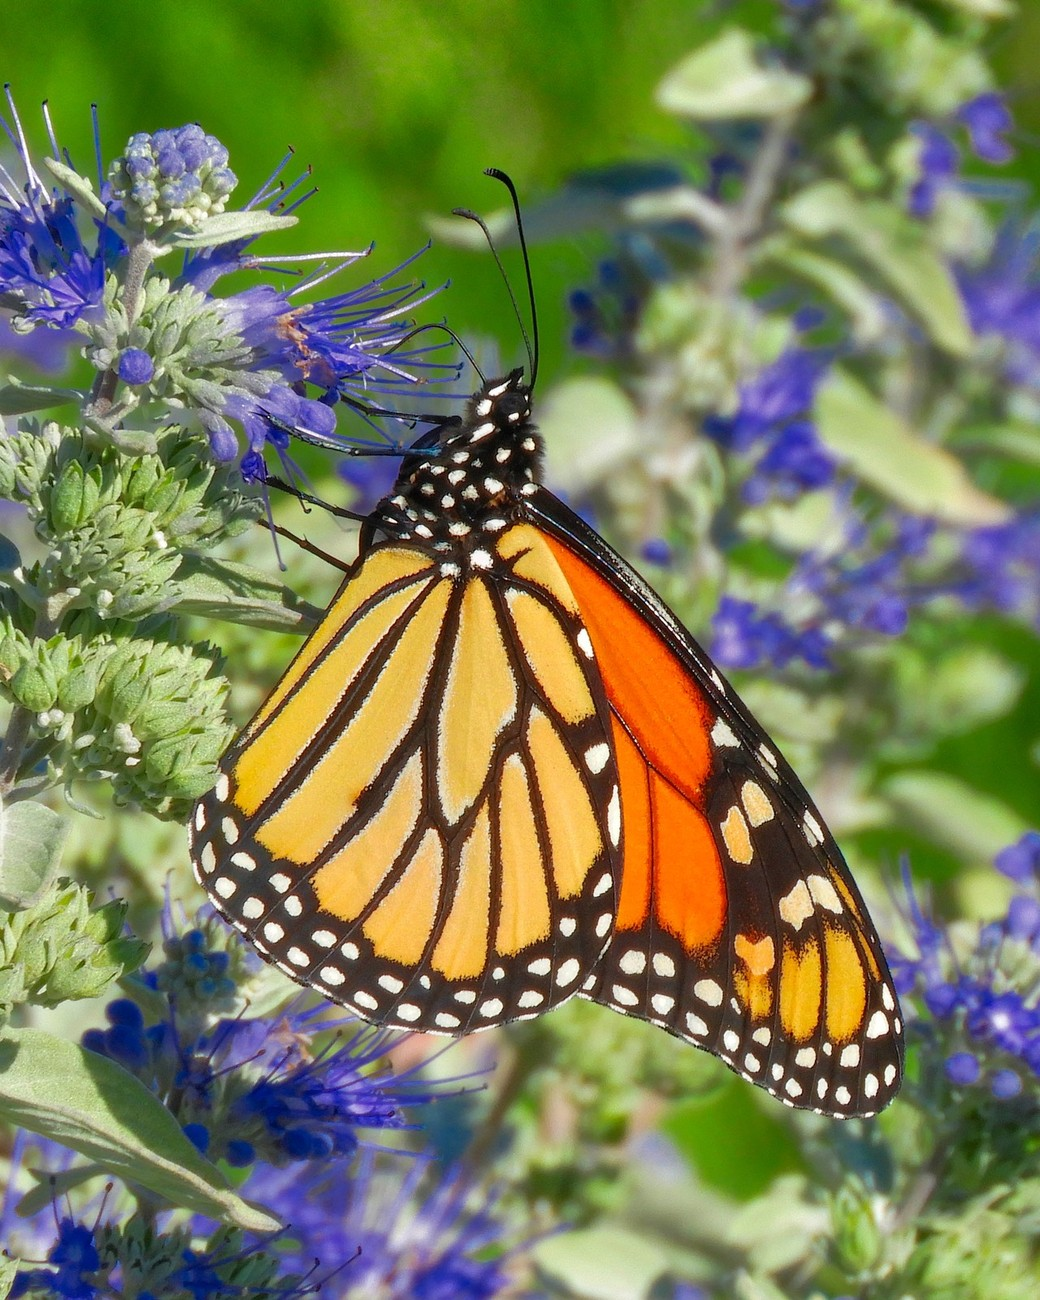 Monarch Butterfly - photo taken in the gardens outside the Buffalo and Erie County Botanical Gardens.